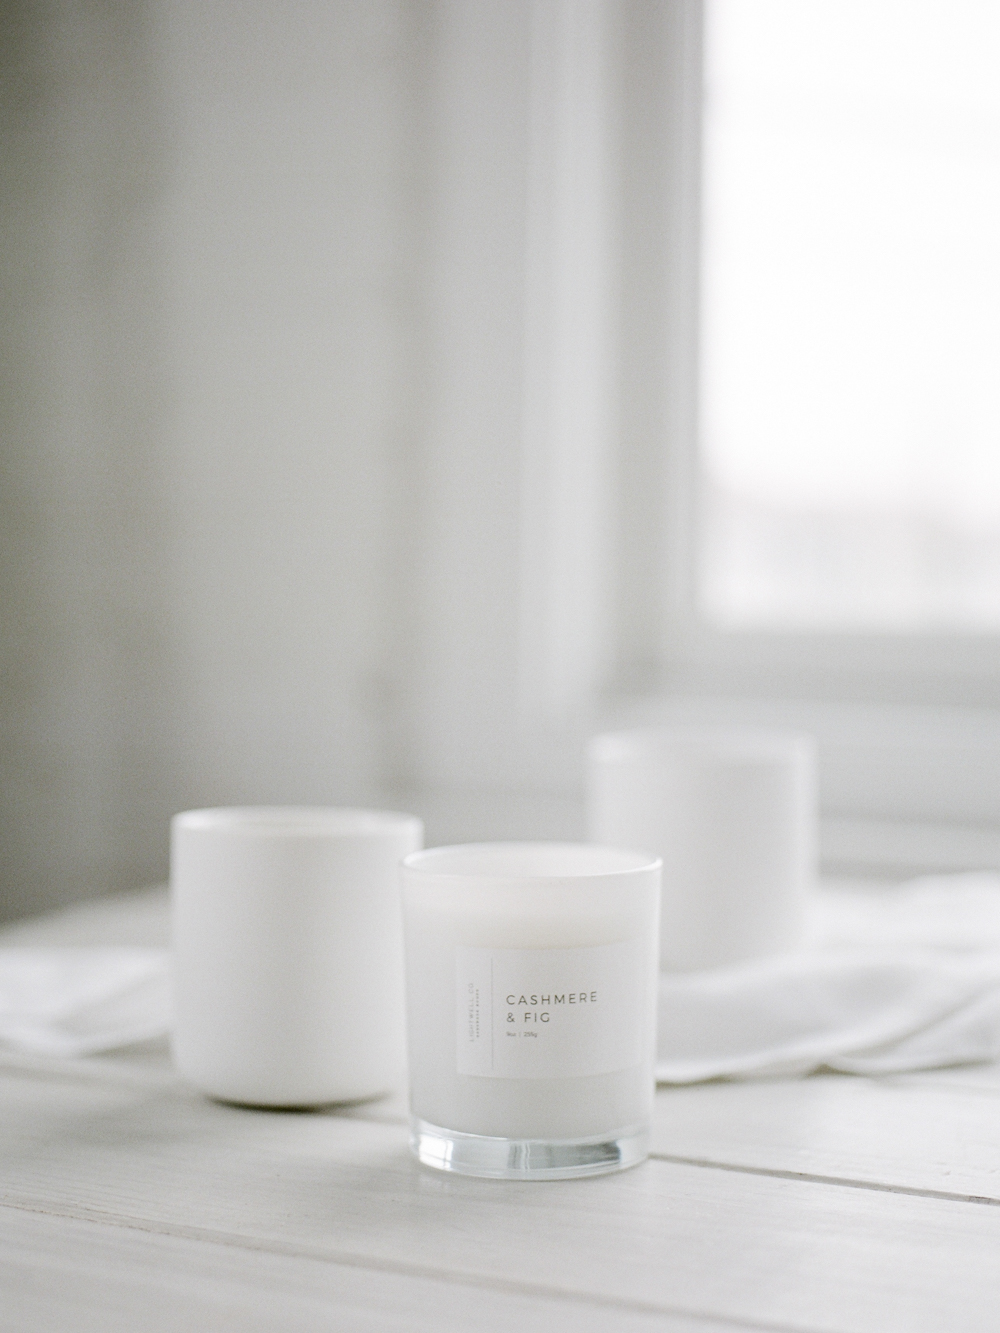 brand photographer Christine Gosch - lightwell co - handmade candles in houston Texas-10.jpg